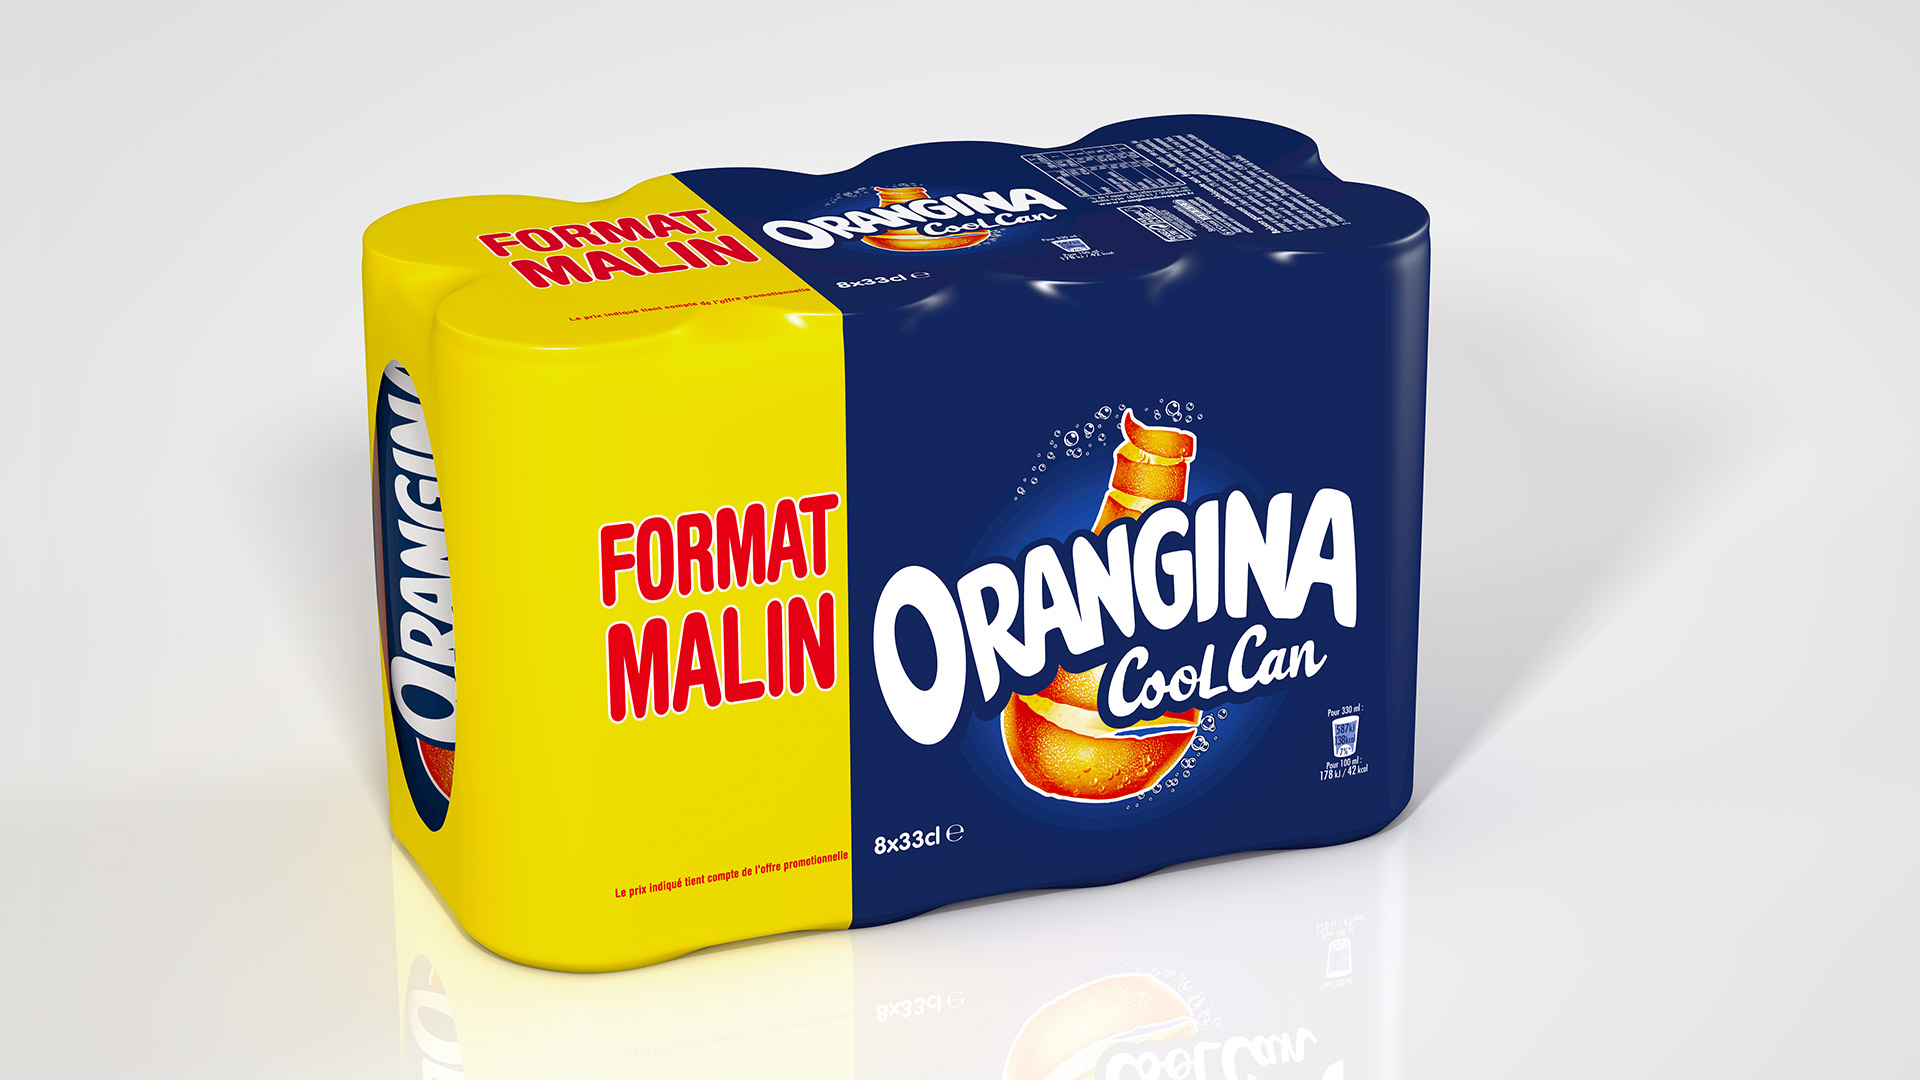 Pack 6x33cl orangina